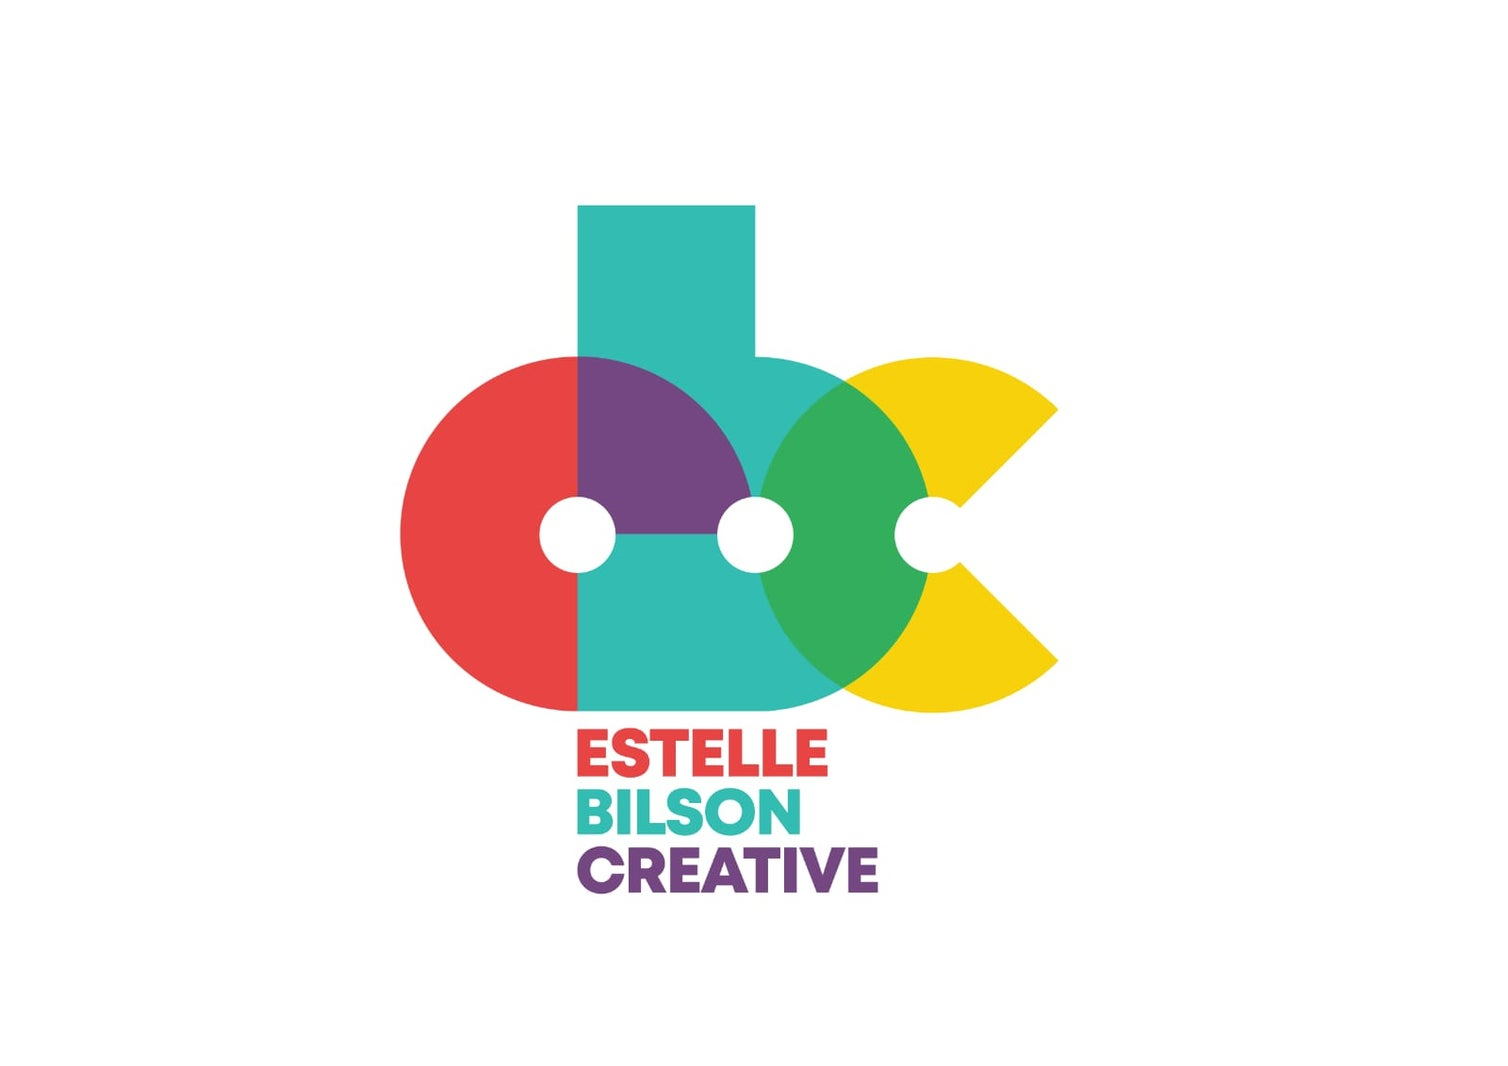 EstelleBilsonCreative